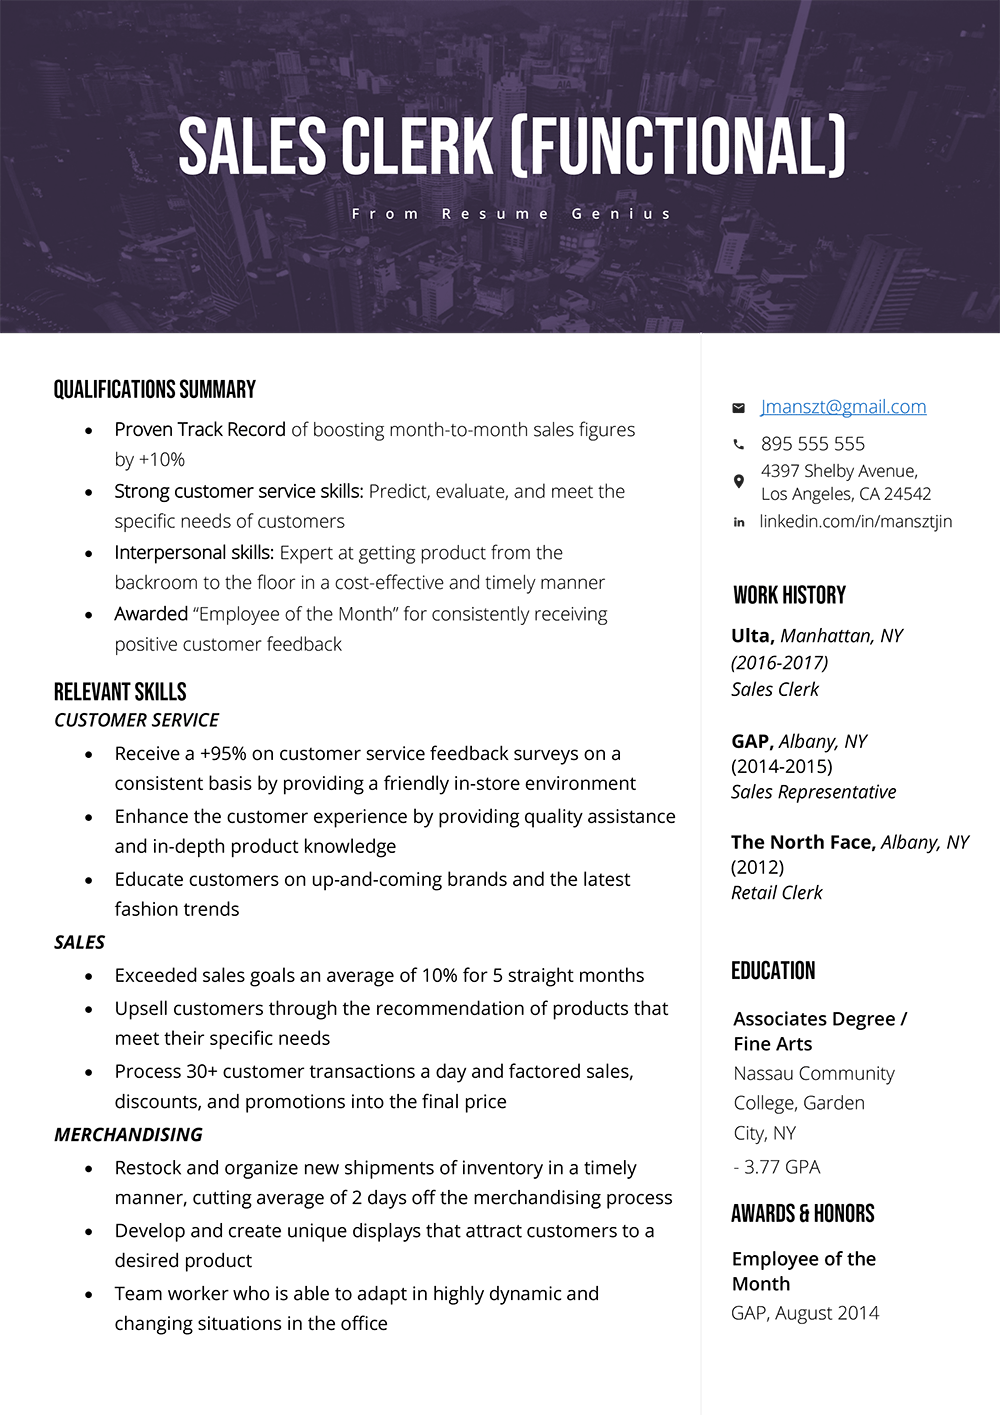 Functional Resume (With images) Resume skills, Resume